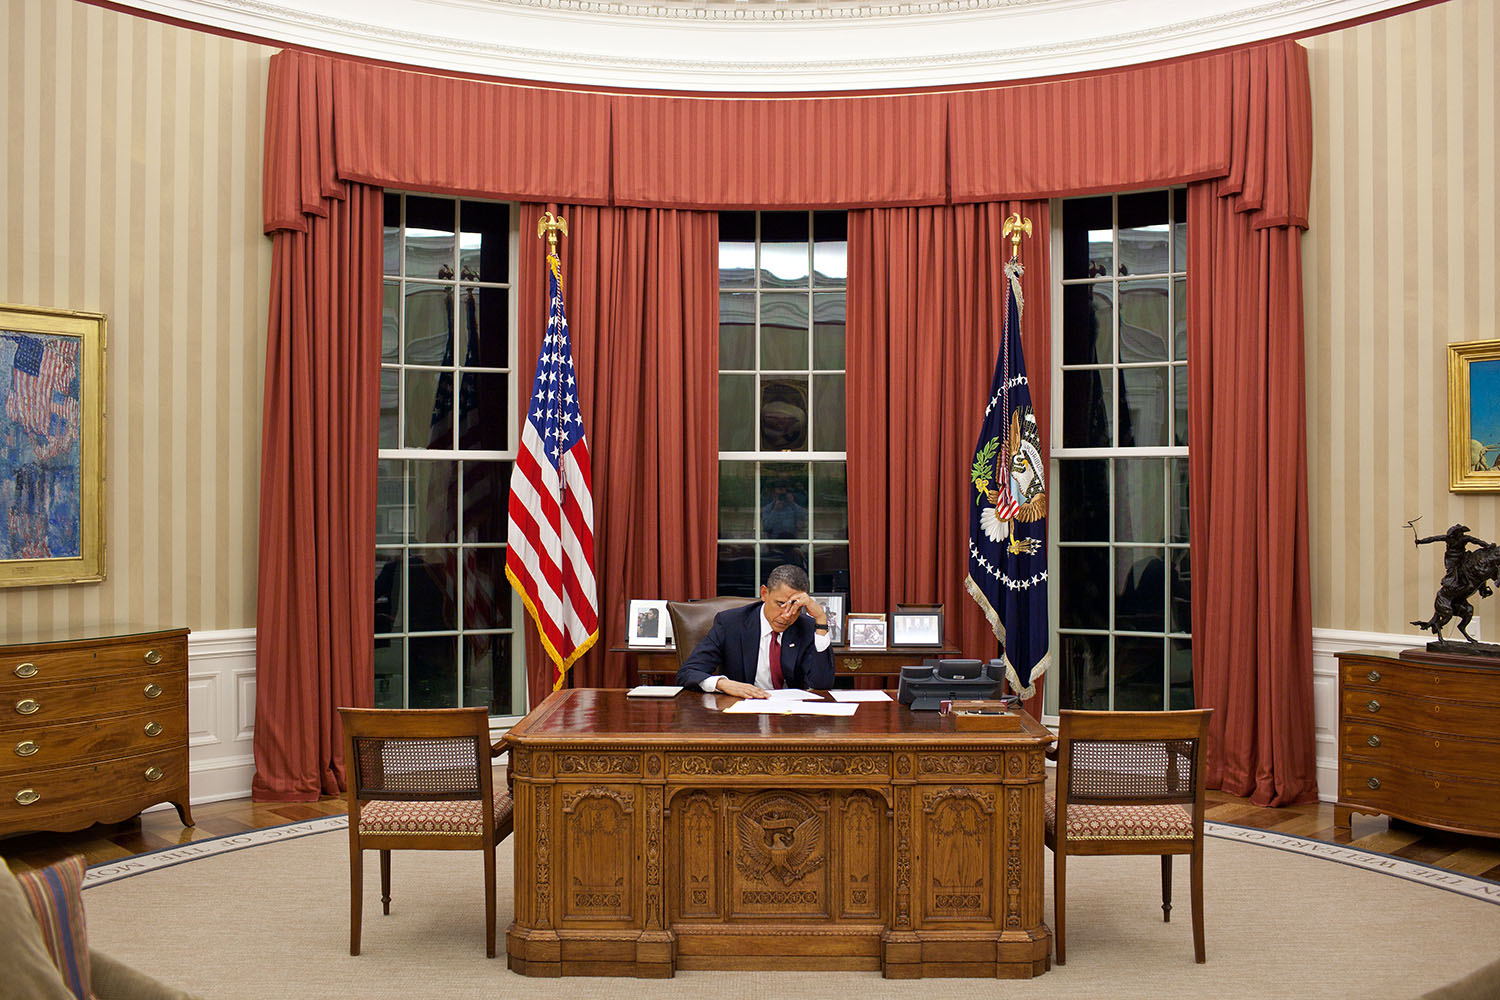 President Obama in the Oval Office prior to the Bin Laden statement